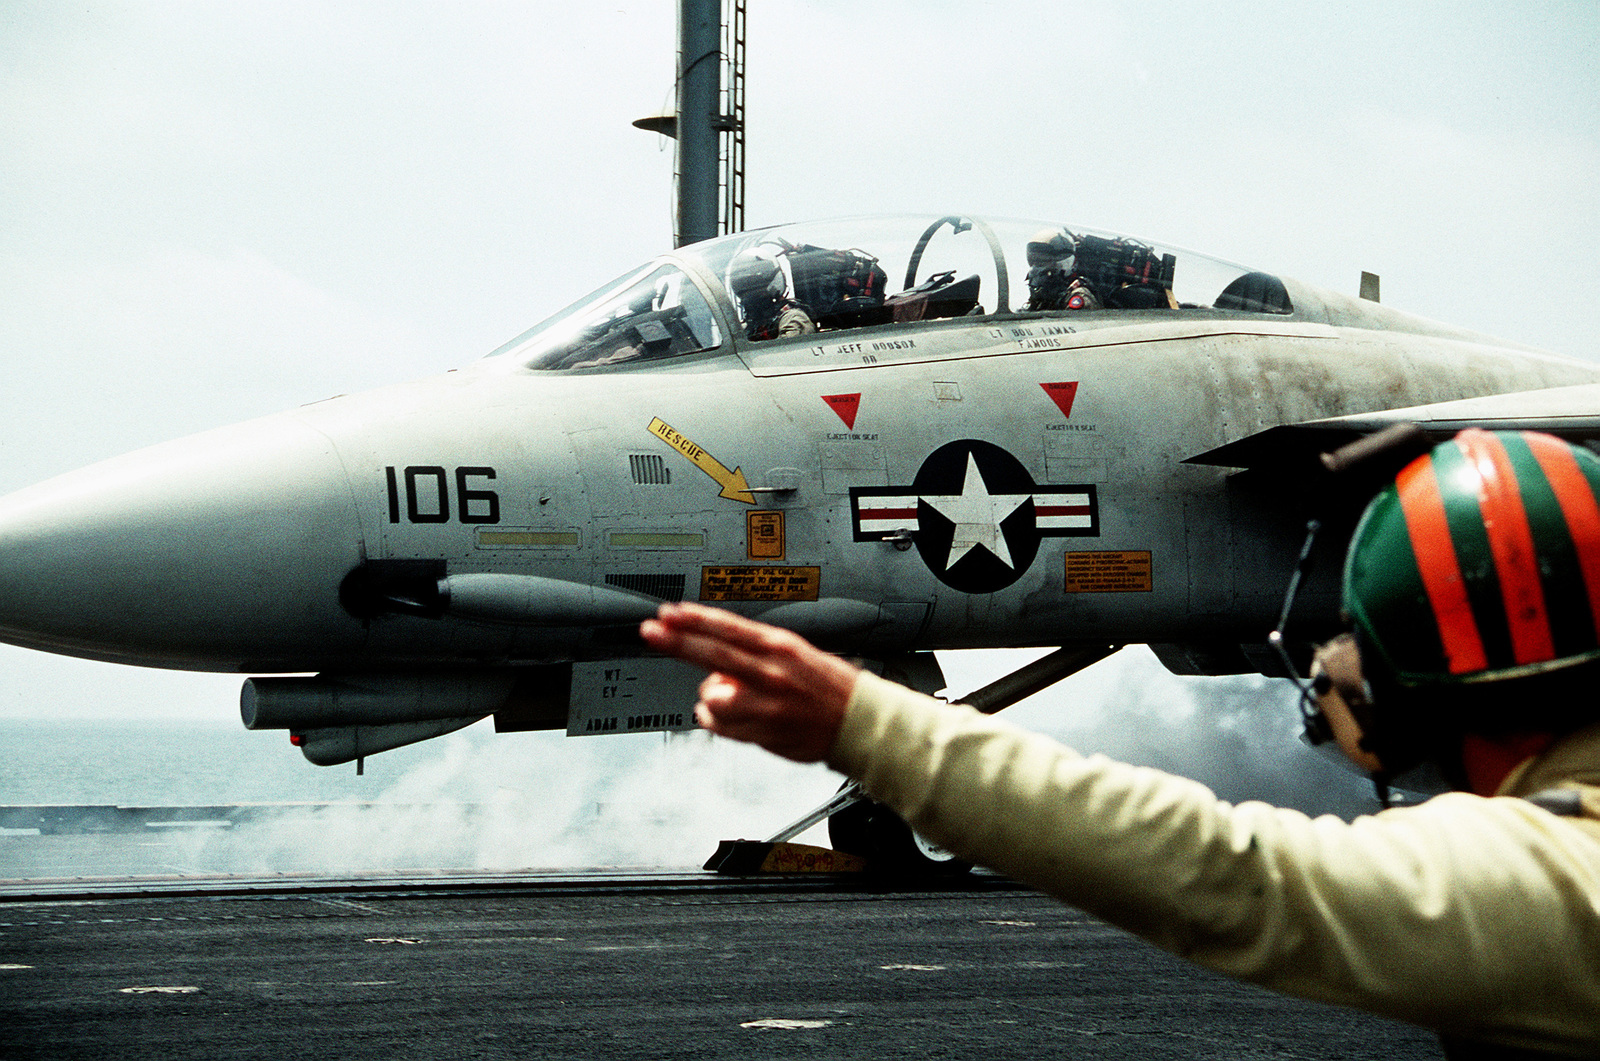 A catapult officer gives the signal to launch an Attack Squadron 196 (VA-196) A-6E Intruder aircraft during flight operations aboard the aircraft carrier USS INDEPENDENCE (CV-62). The INDEPENDENCE is one of the U.S. Navy ships sent to the Persian Gulf in response to Iraq's invasion of Kuwait